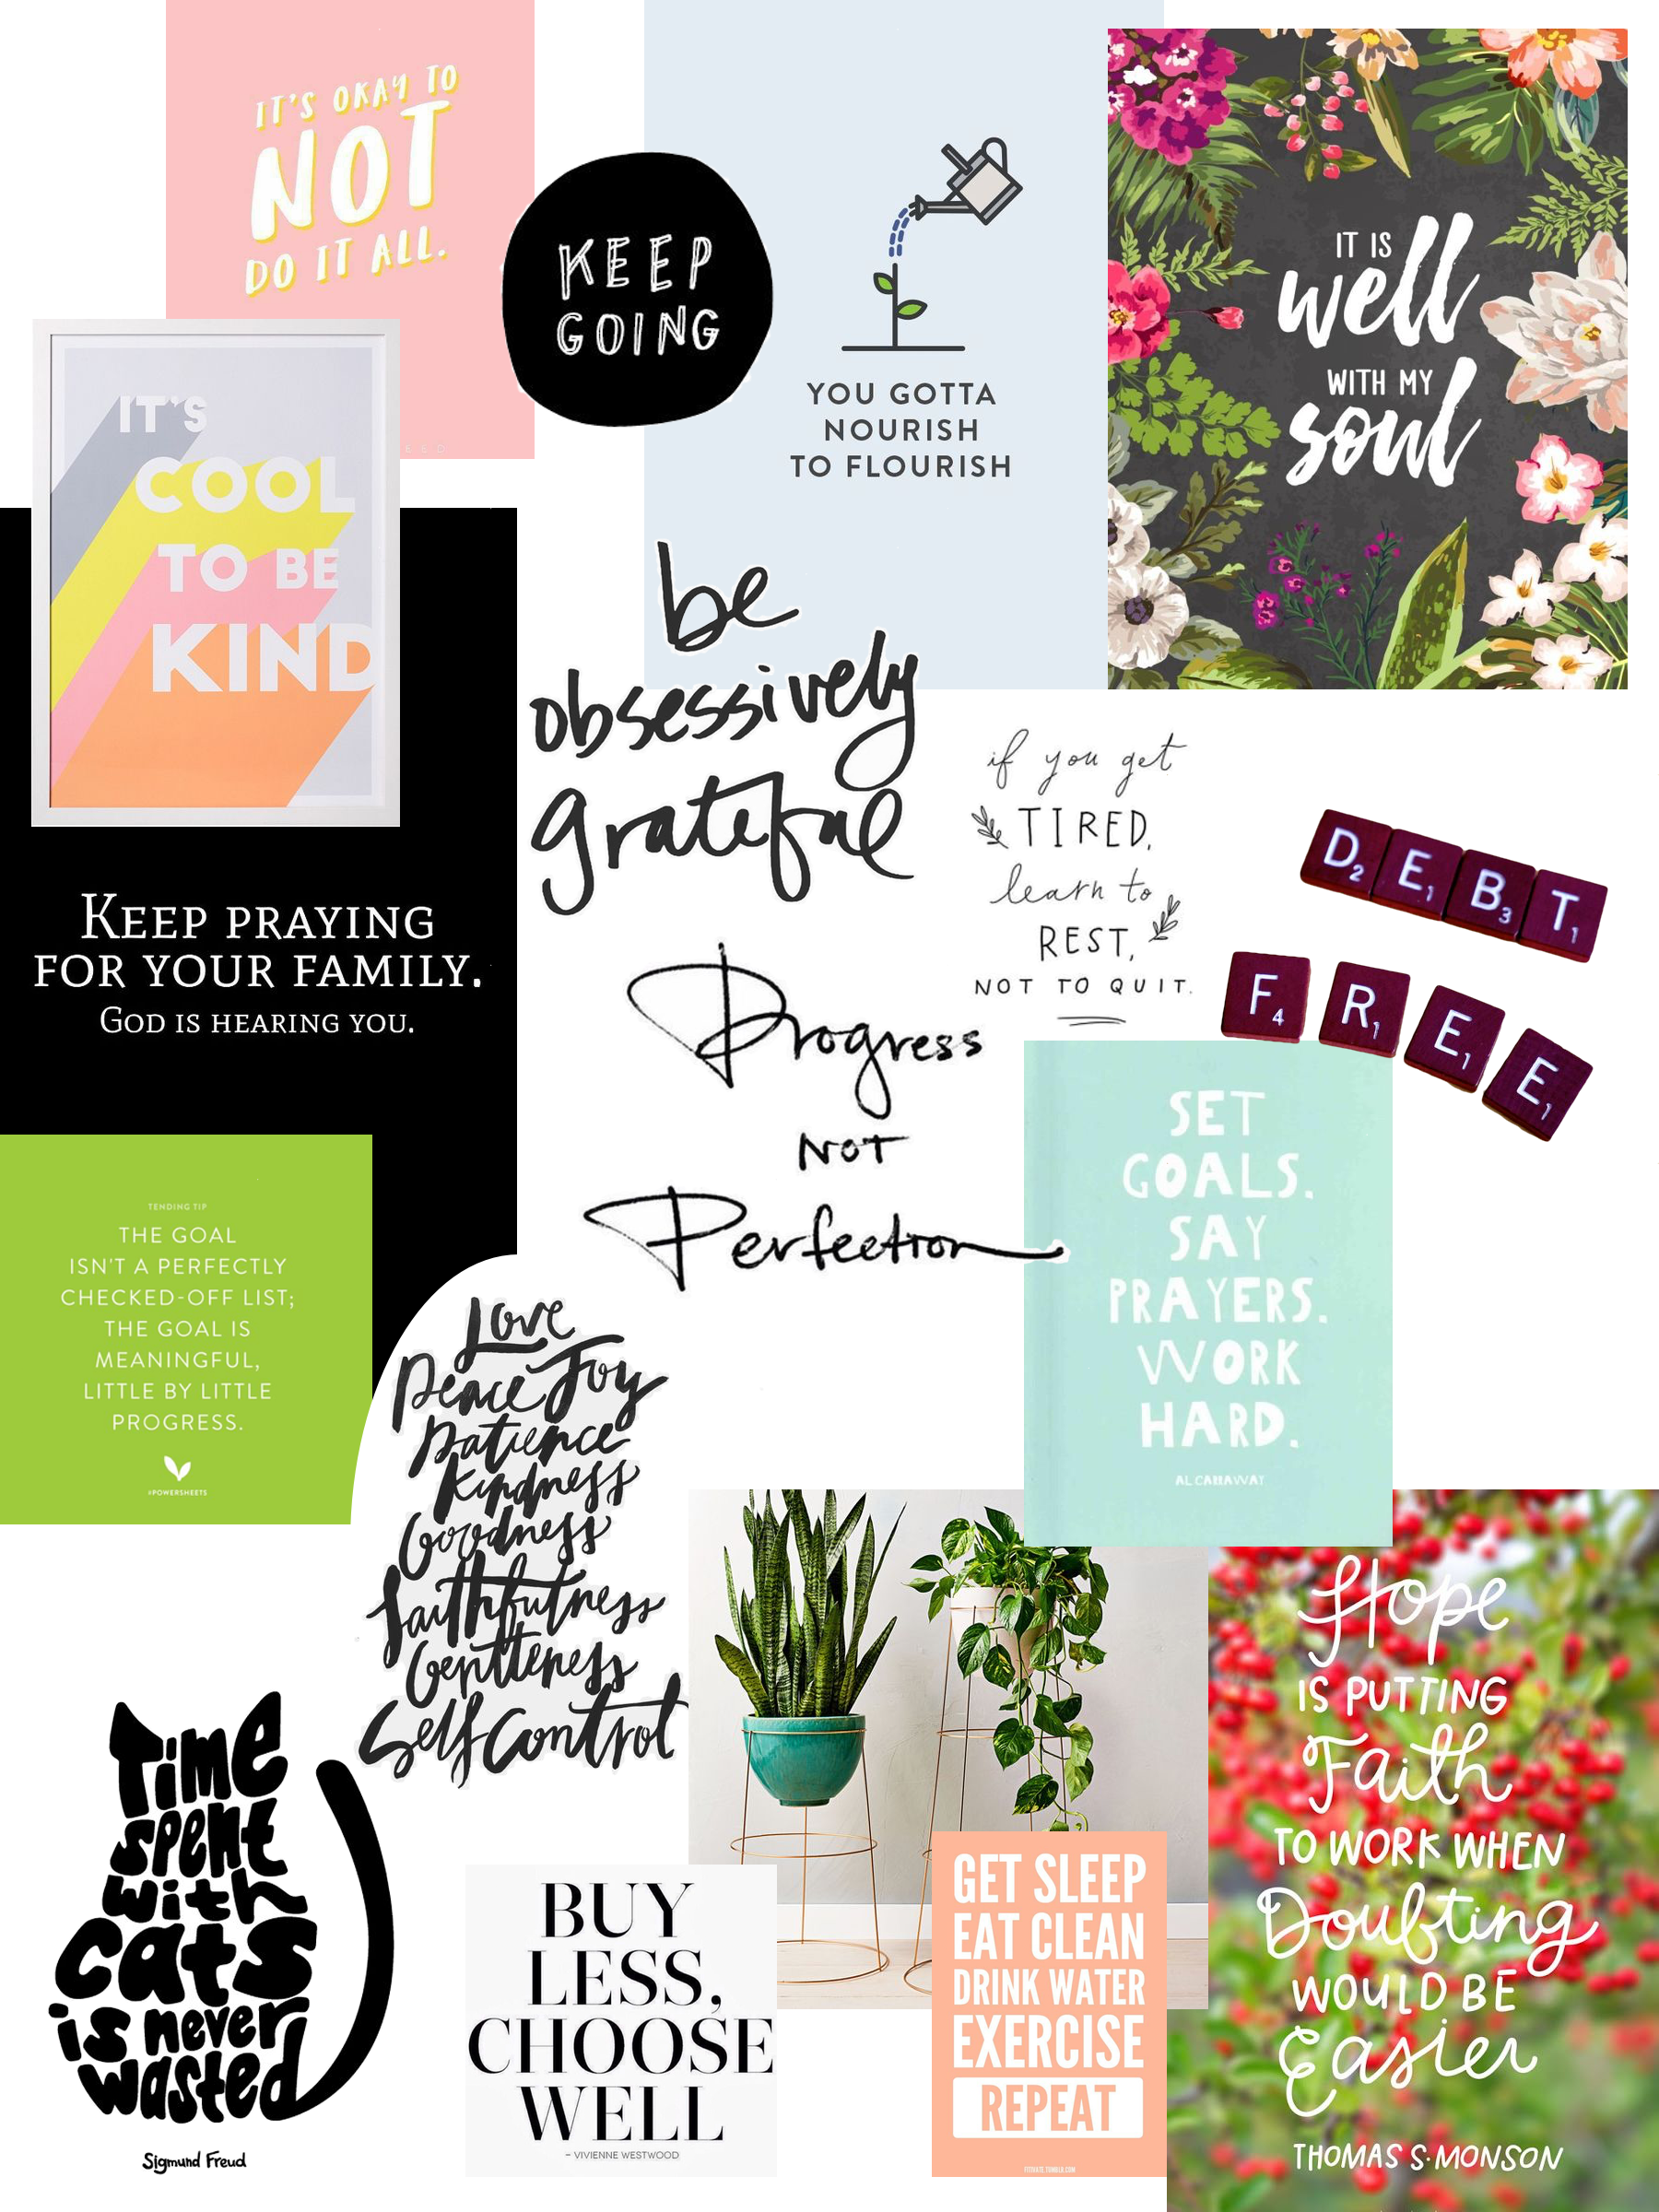 2018 Vision Board - Another great exercise from the PowerSheets planner was creating my 2018 Vision Board. I found all of my images for my board on Pinterest. I hope to look at this vision board for motivation and inspiration throughout the year.